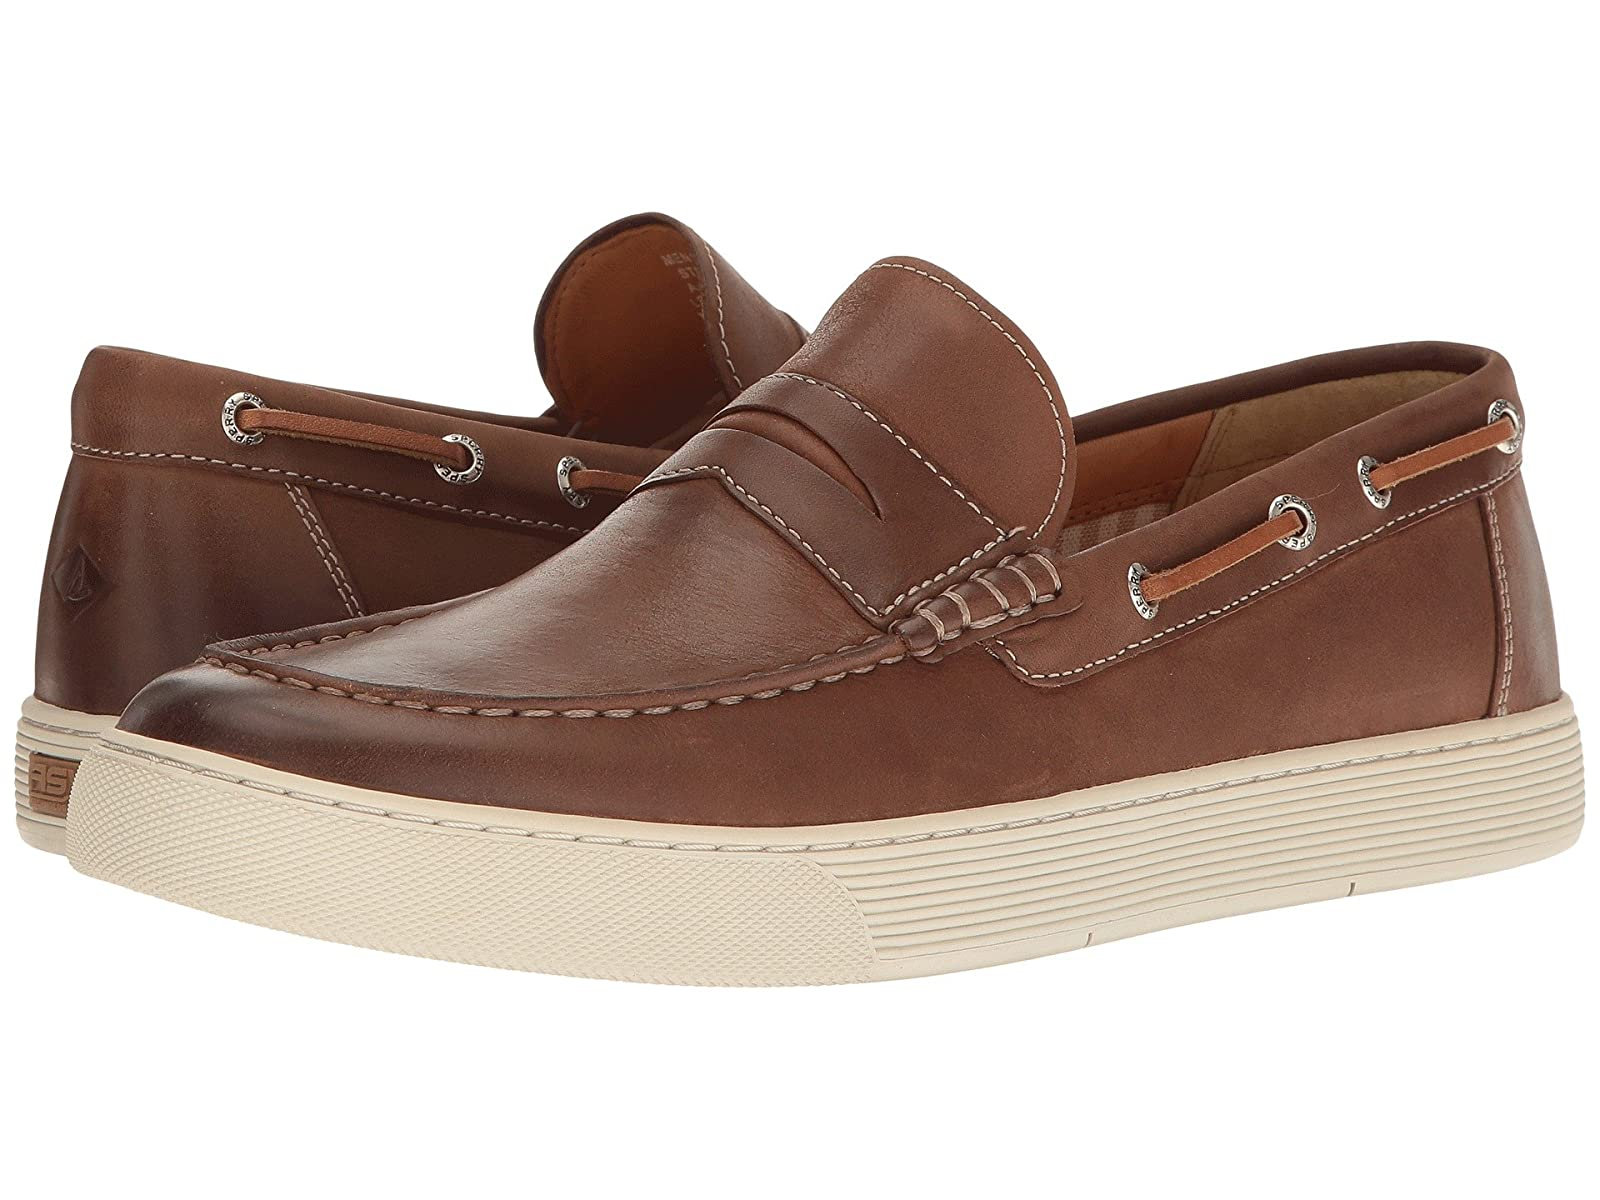 Sperry Gold Sport Casual Penny w/ ASVCheap and distinctive eye-catching shoes